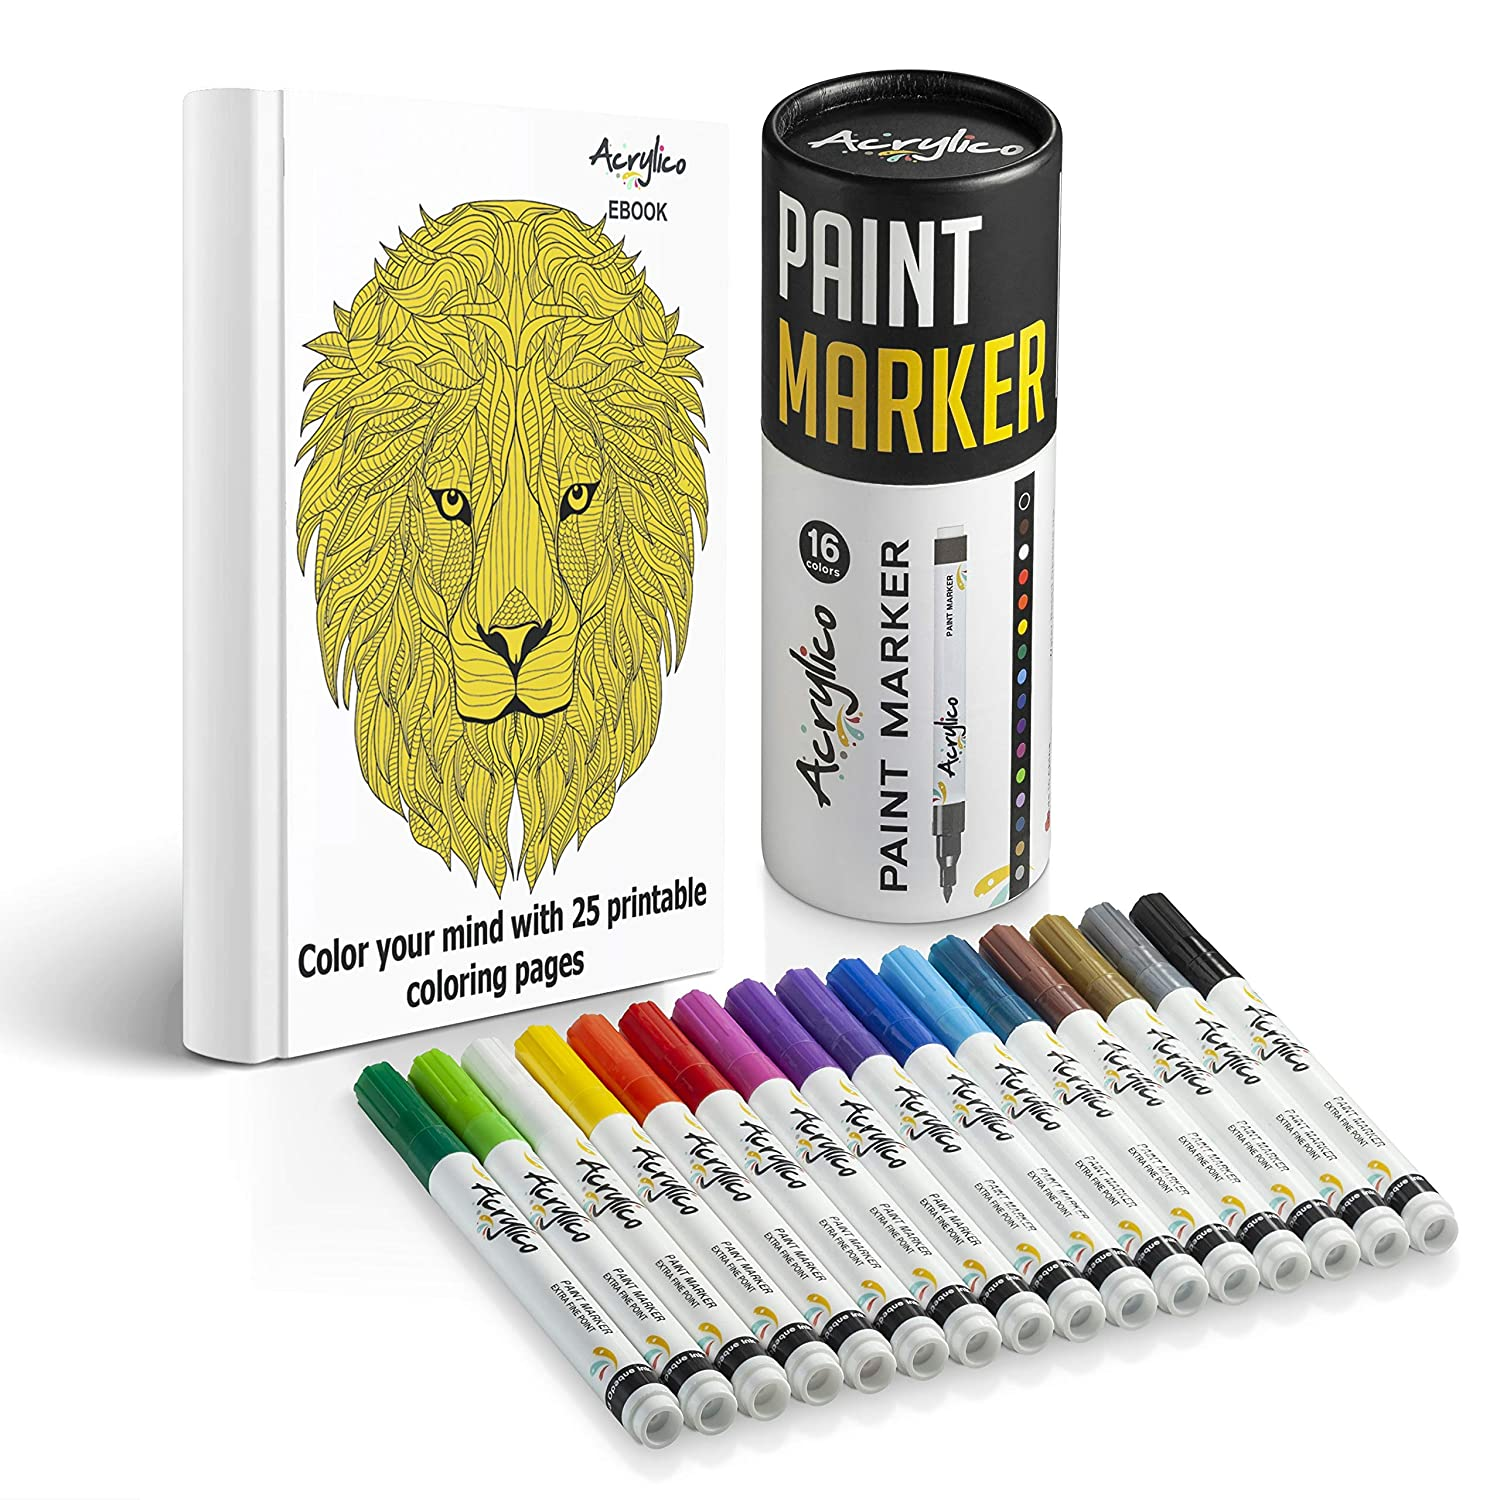 Acrylico Markers Paint Pens   16 Vibrant Colors Acrylic Pens Set   Extra-Fine Tip, Opaque Ink, Non-Toxic